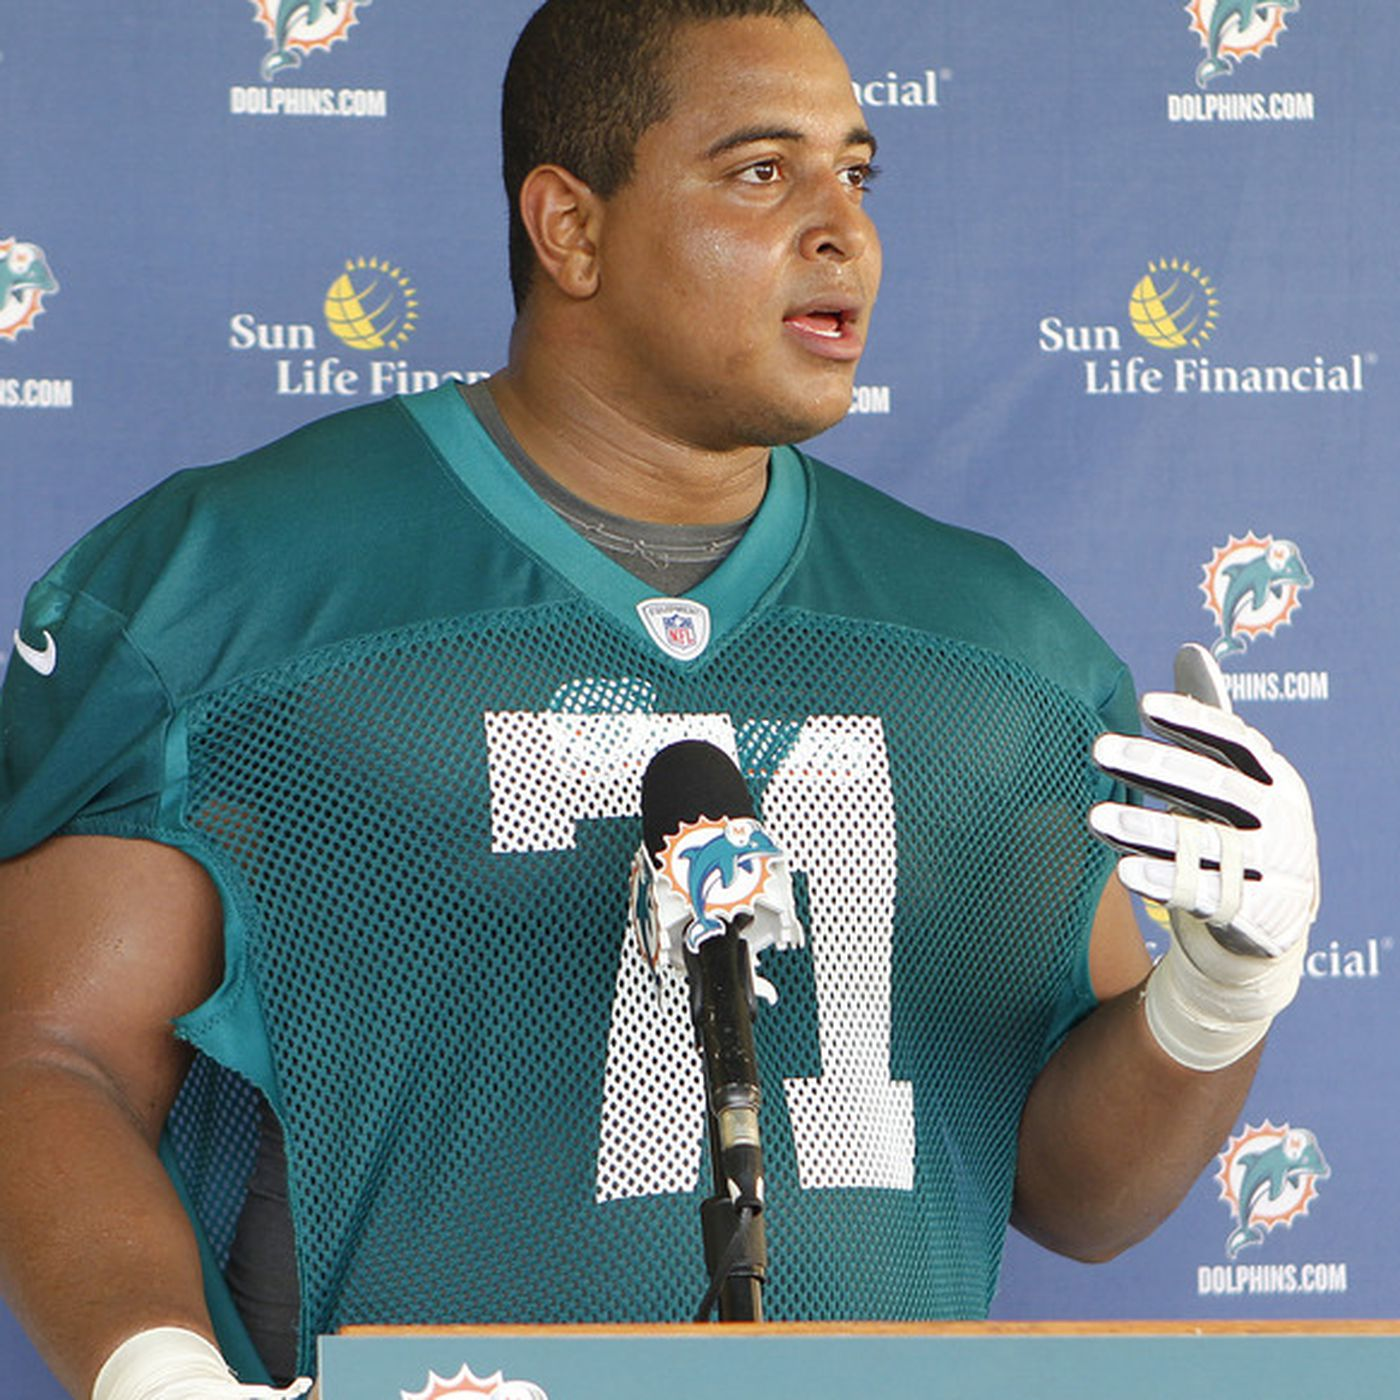 Miami Dolphins Sign Draft Pick Jonathan Martin To 4-Year Contract ...